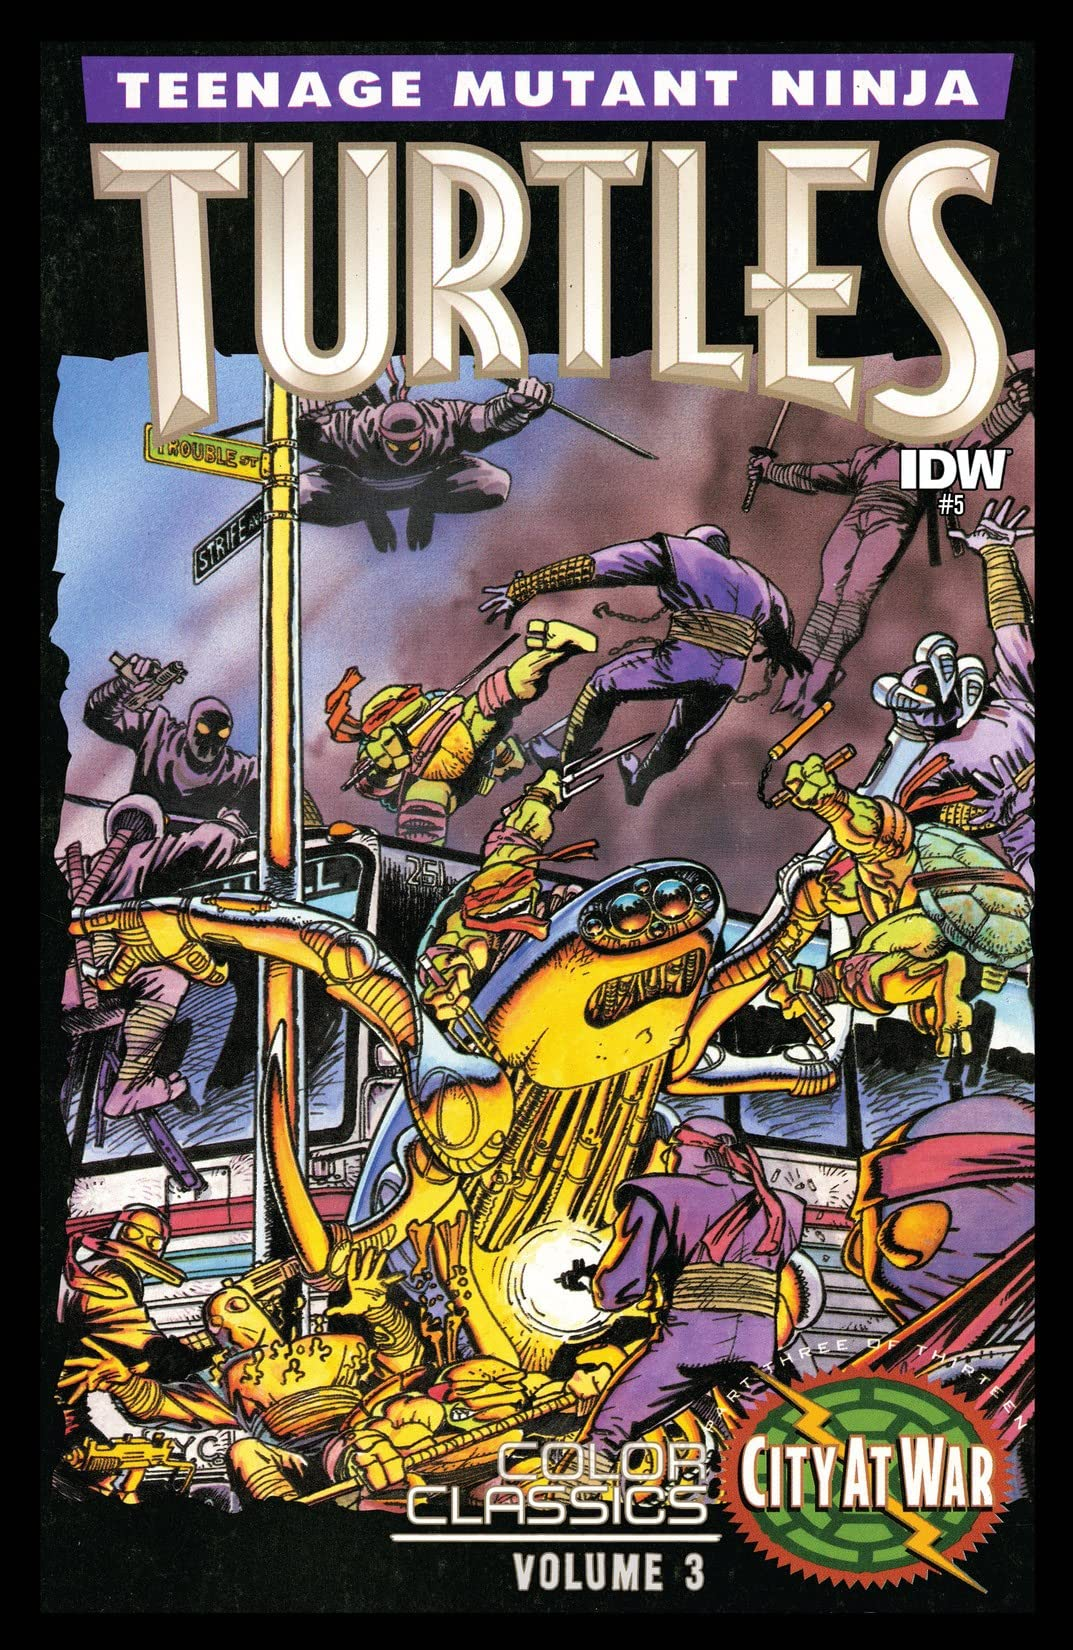 Teenage Mutant Ninja Turtles: Color Classics Vol. 3 #5